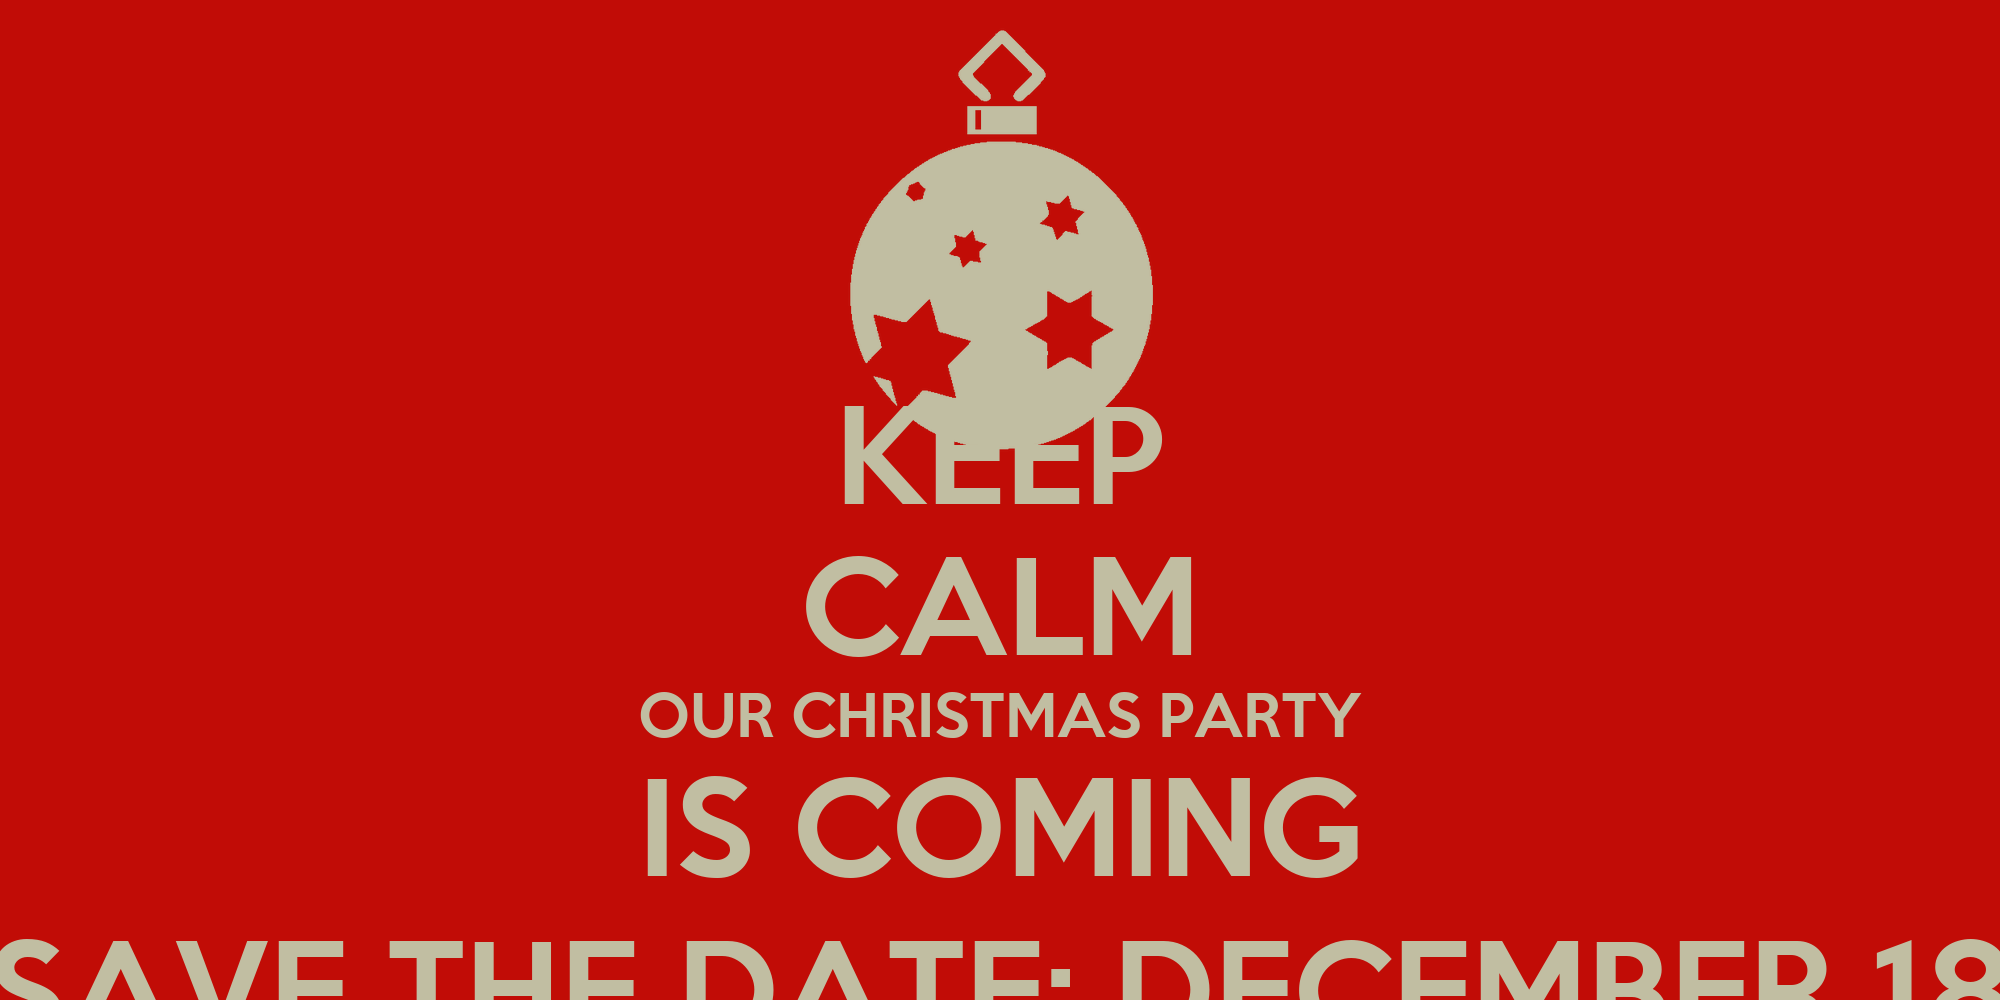 Keep Calm Our Christmas Party Is Coming Save The Date December 18